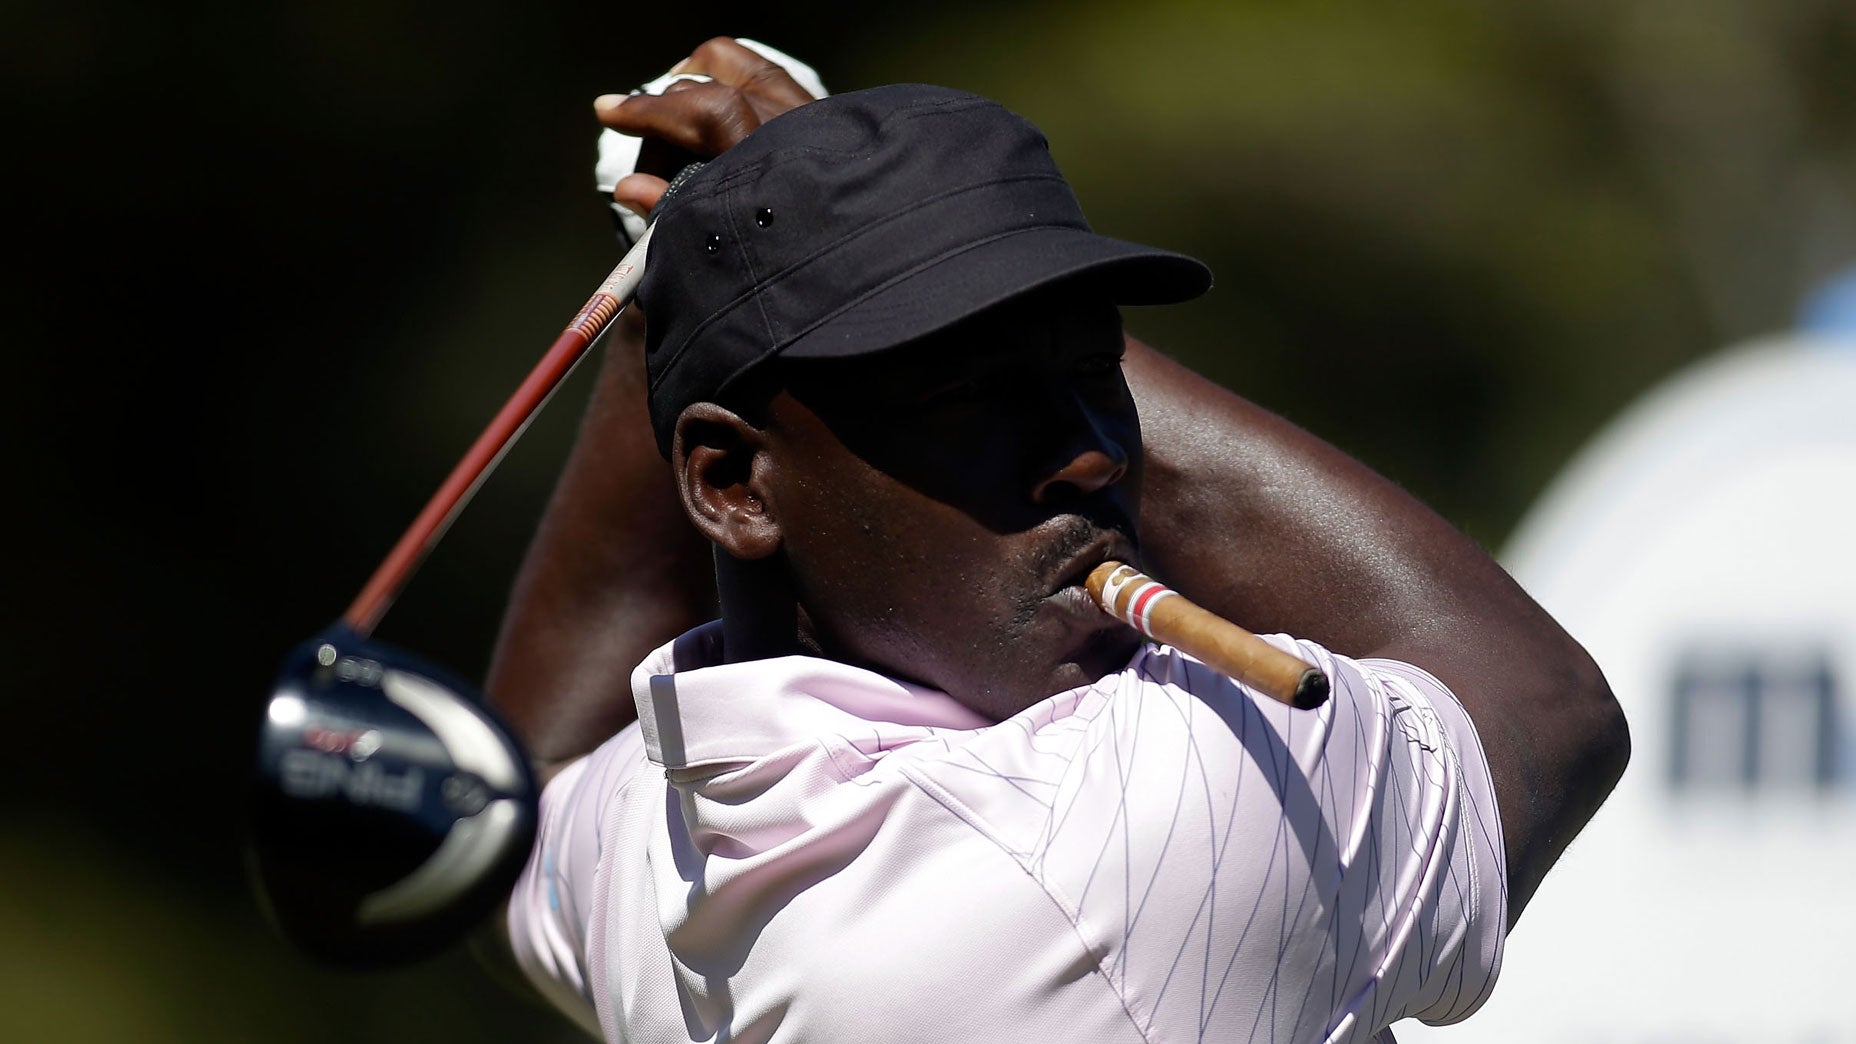 Michael Jordan golf course delivers food and beer from, of course, the Air